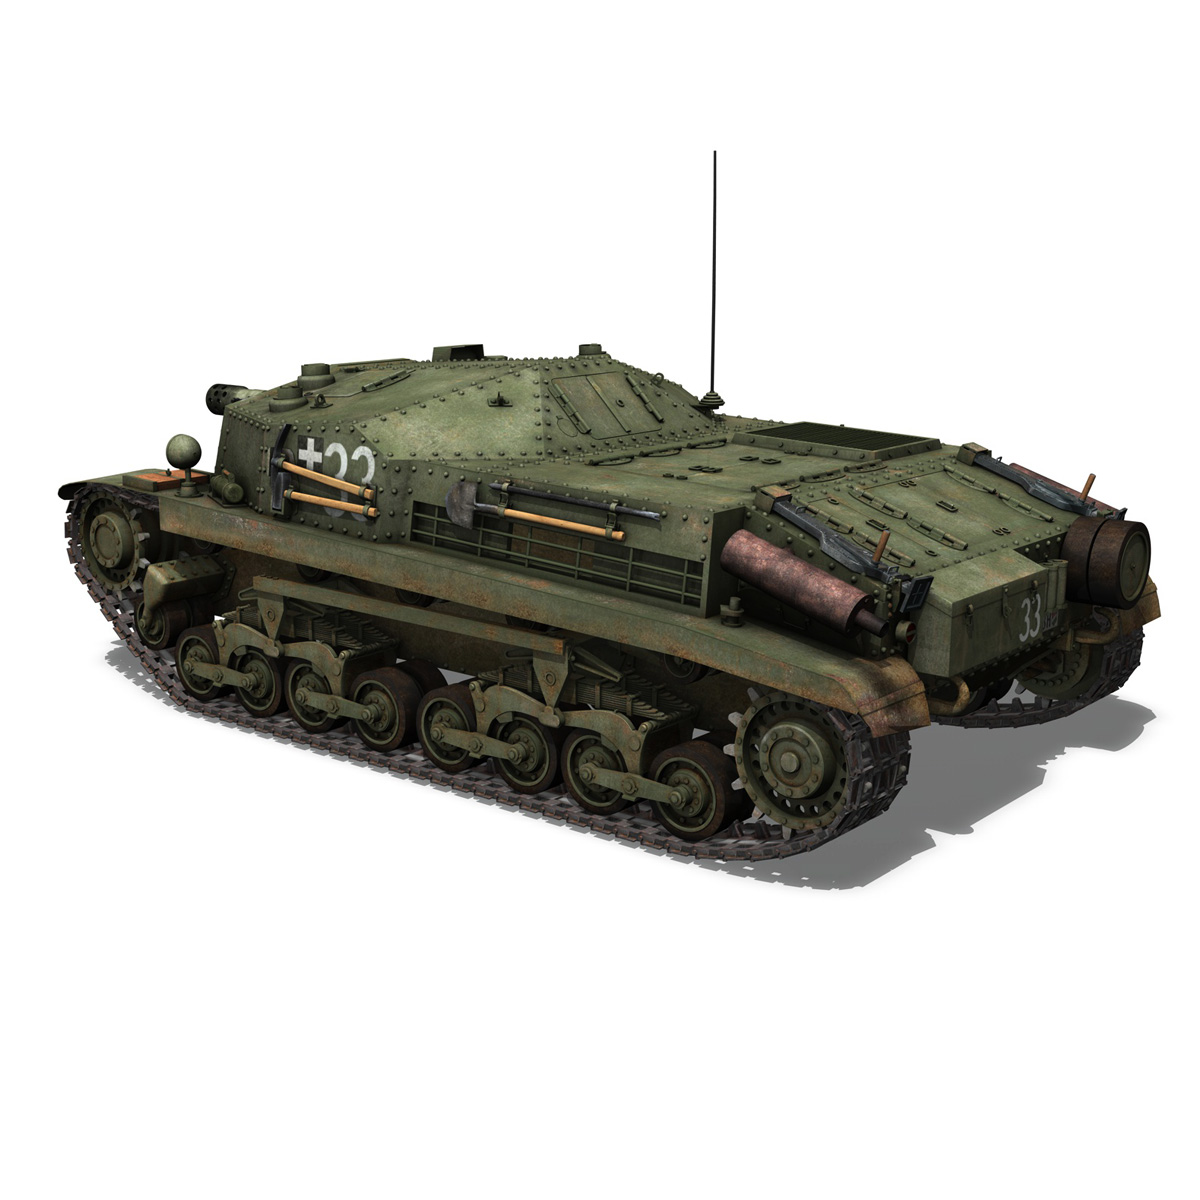 43m zrinyi ii – assault gun – 3rd battery 33 3d model 3ds fbx c4d lwo obj 278125